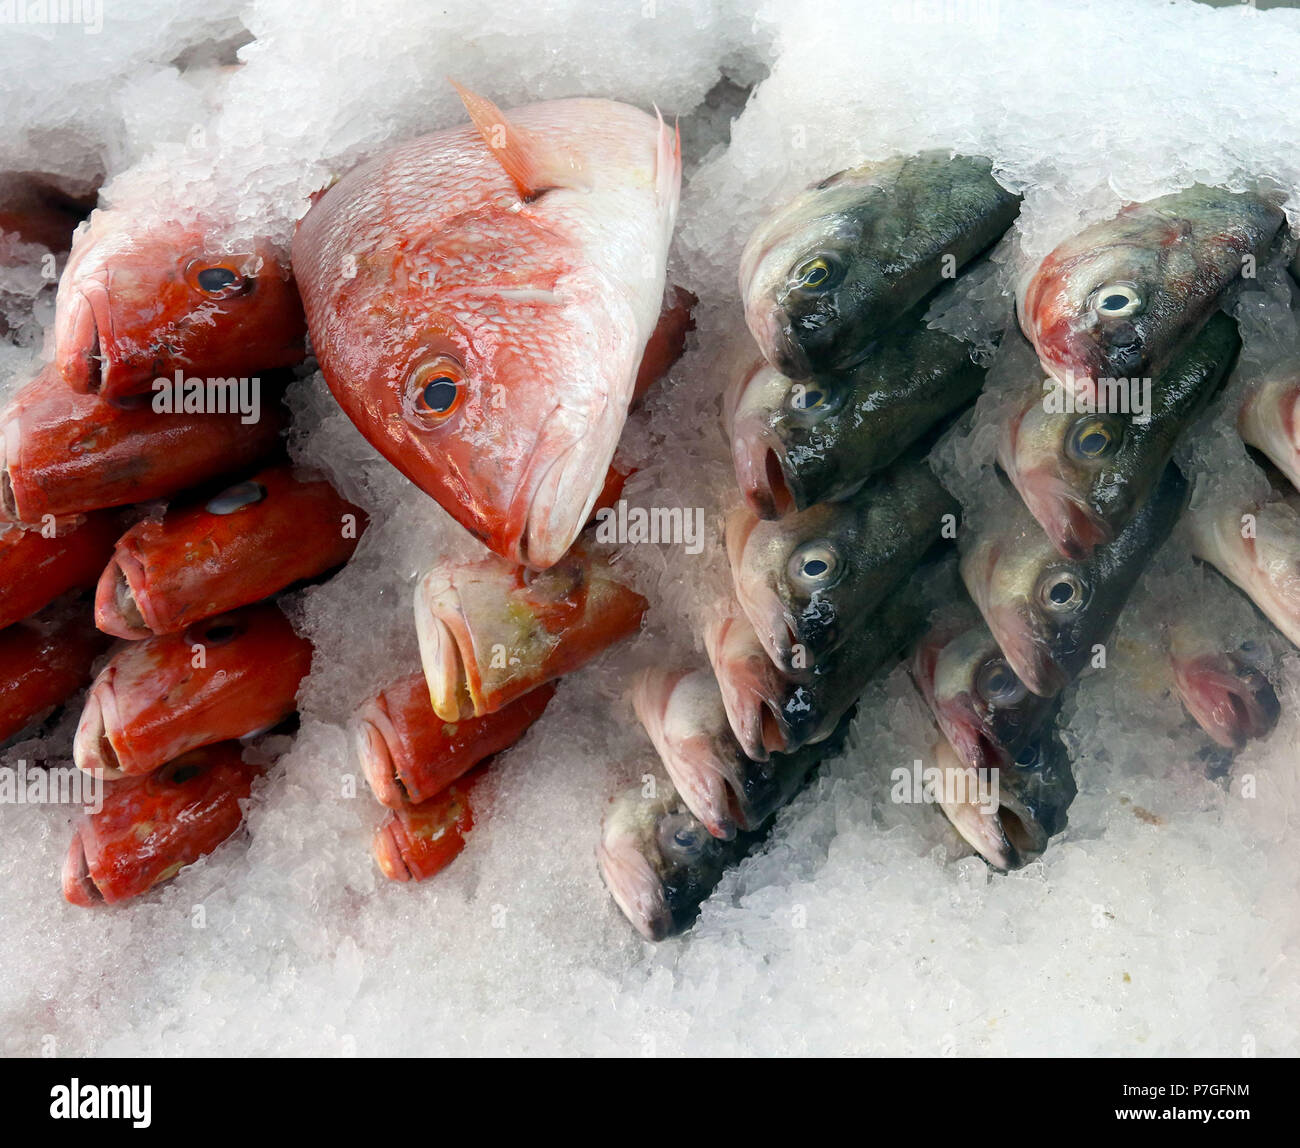 Wild whole red snapper on ice Stock Photo